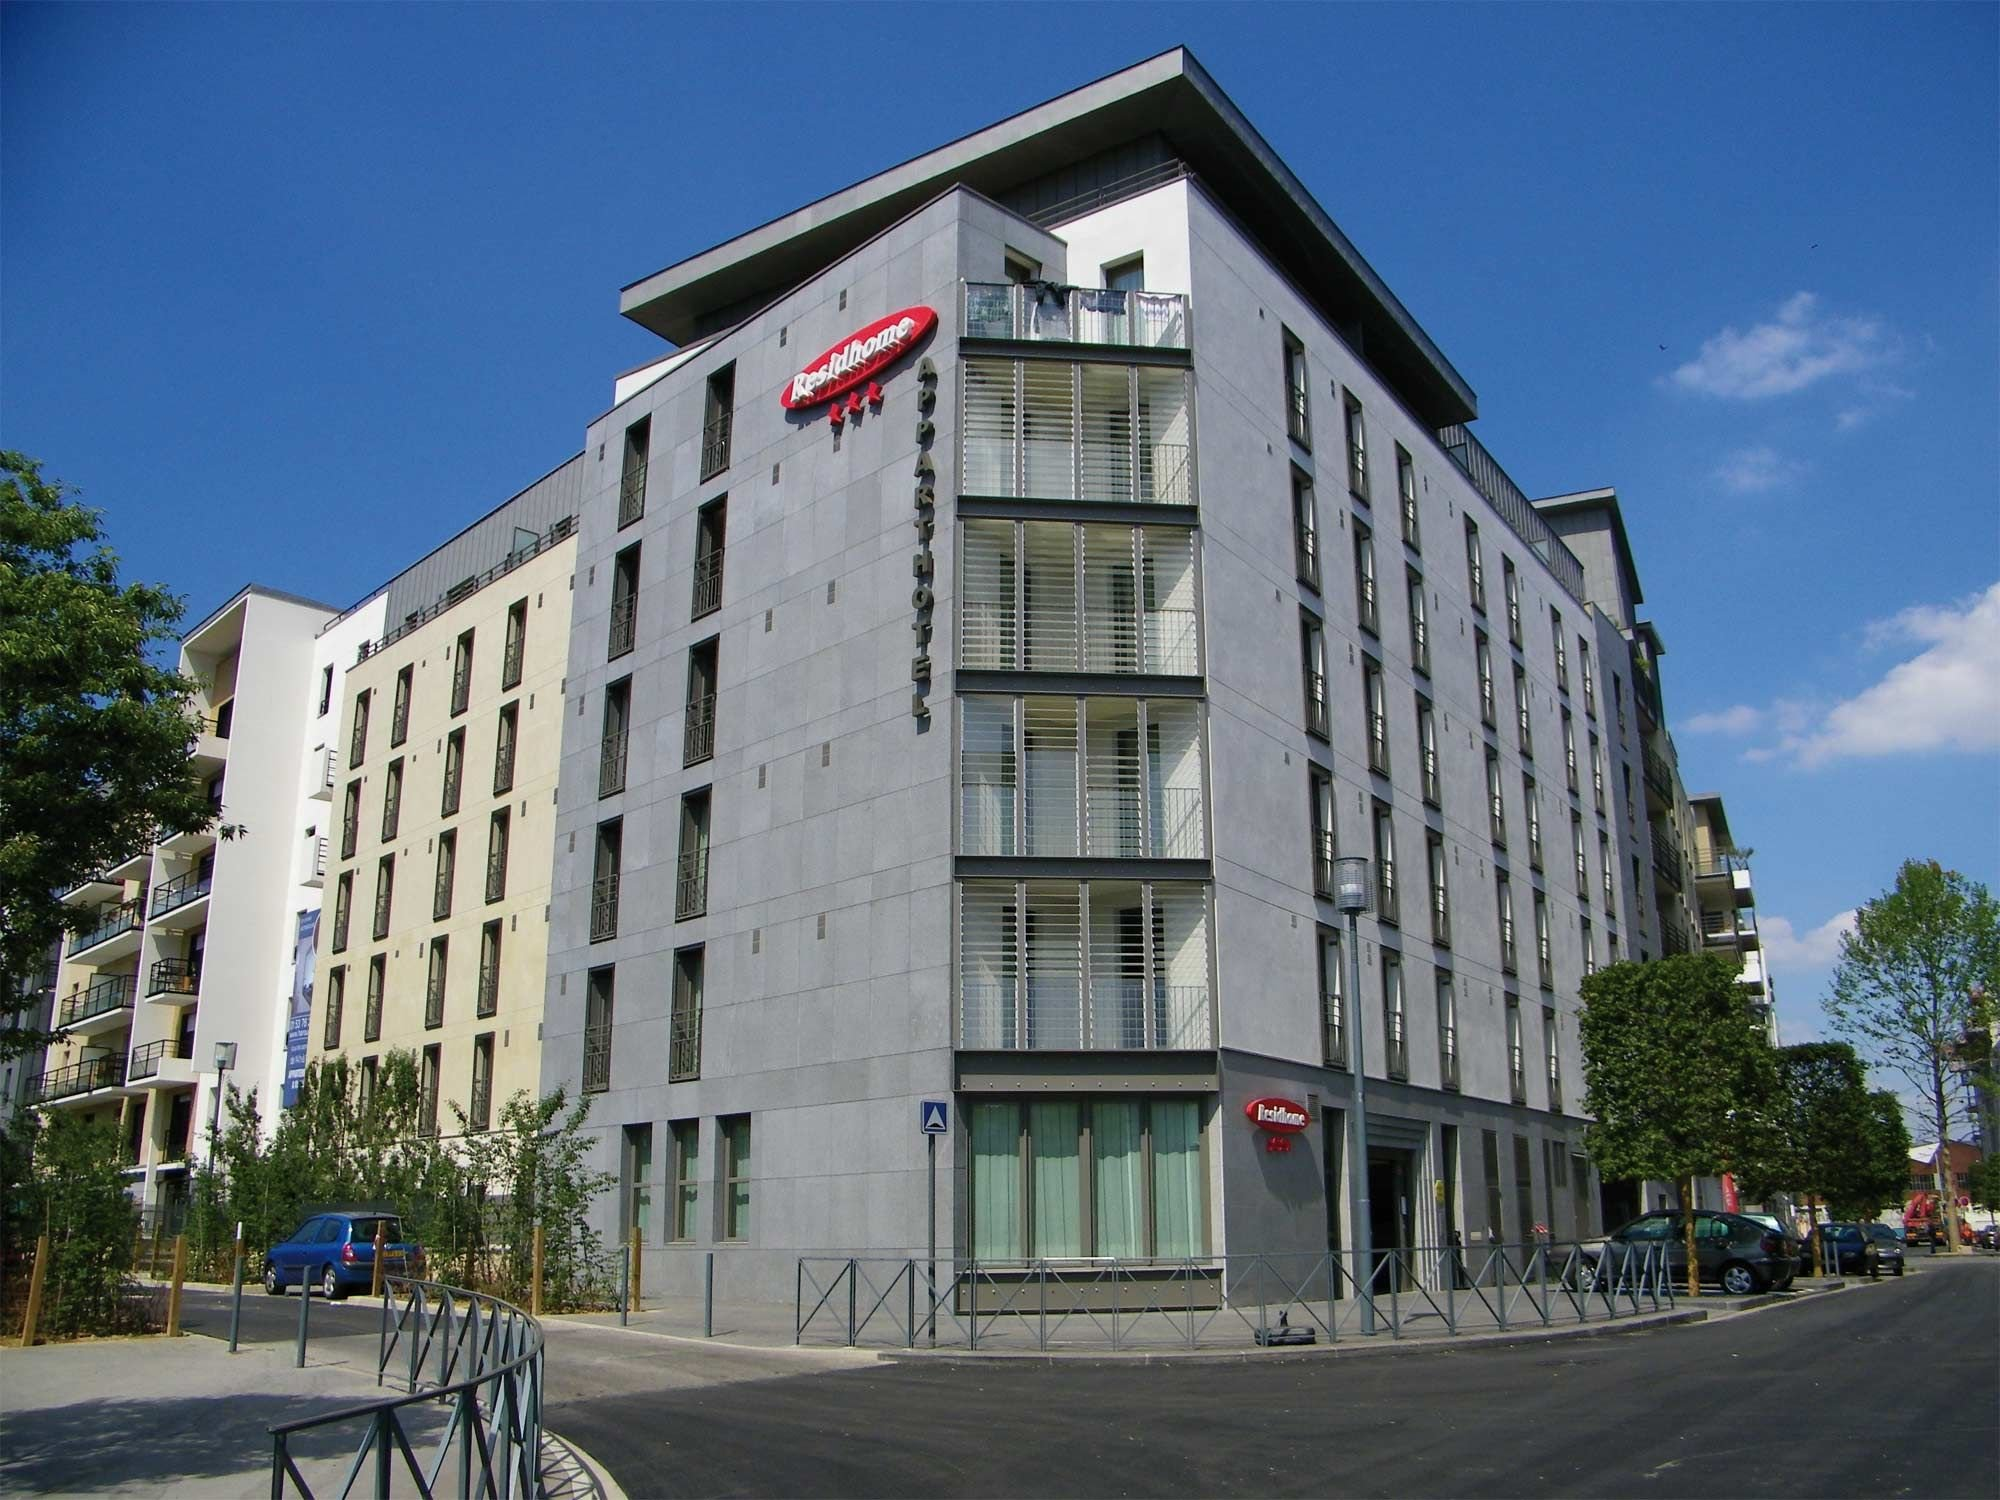 Residhome Asnieres